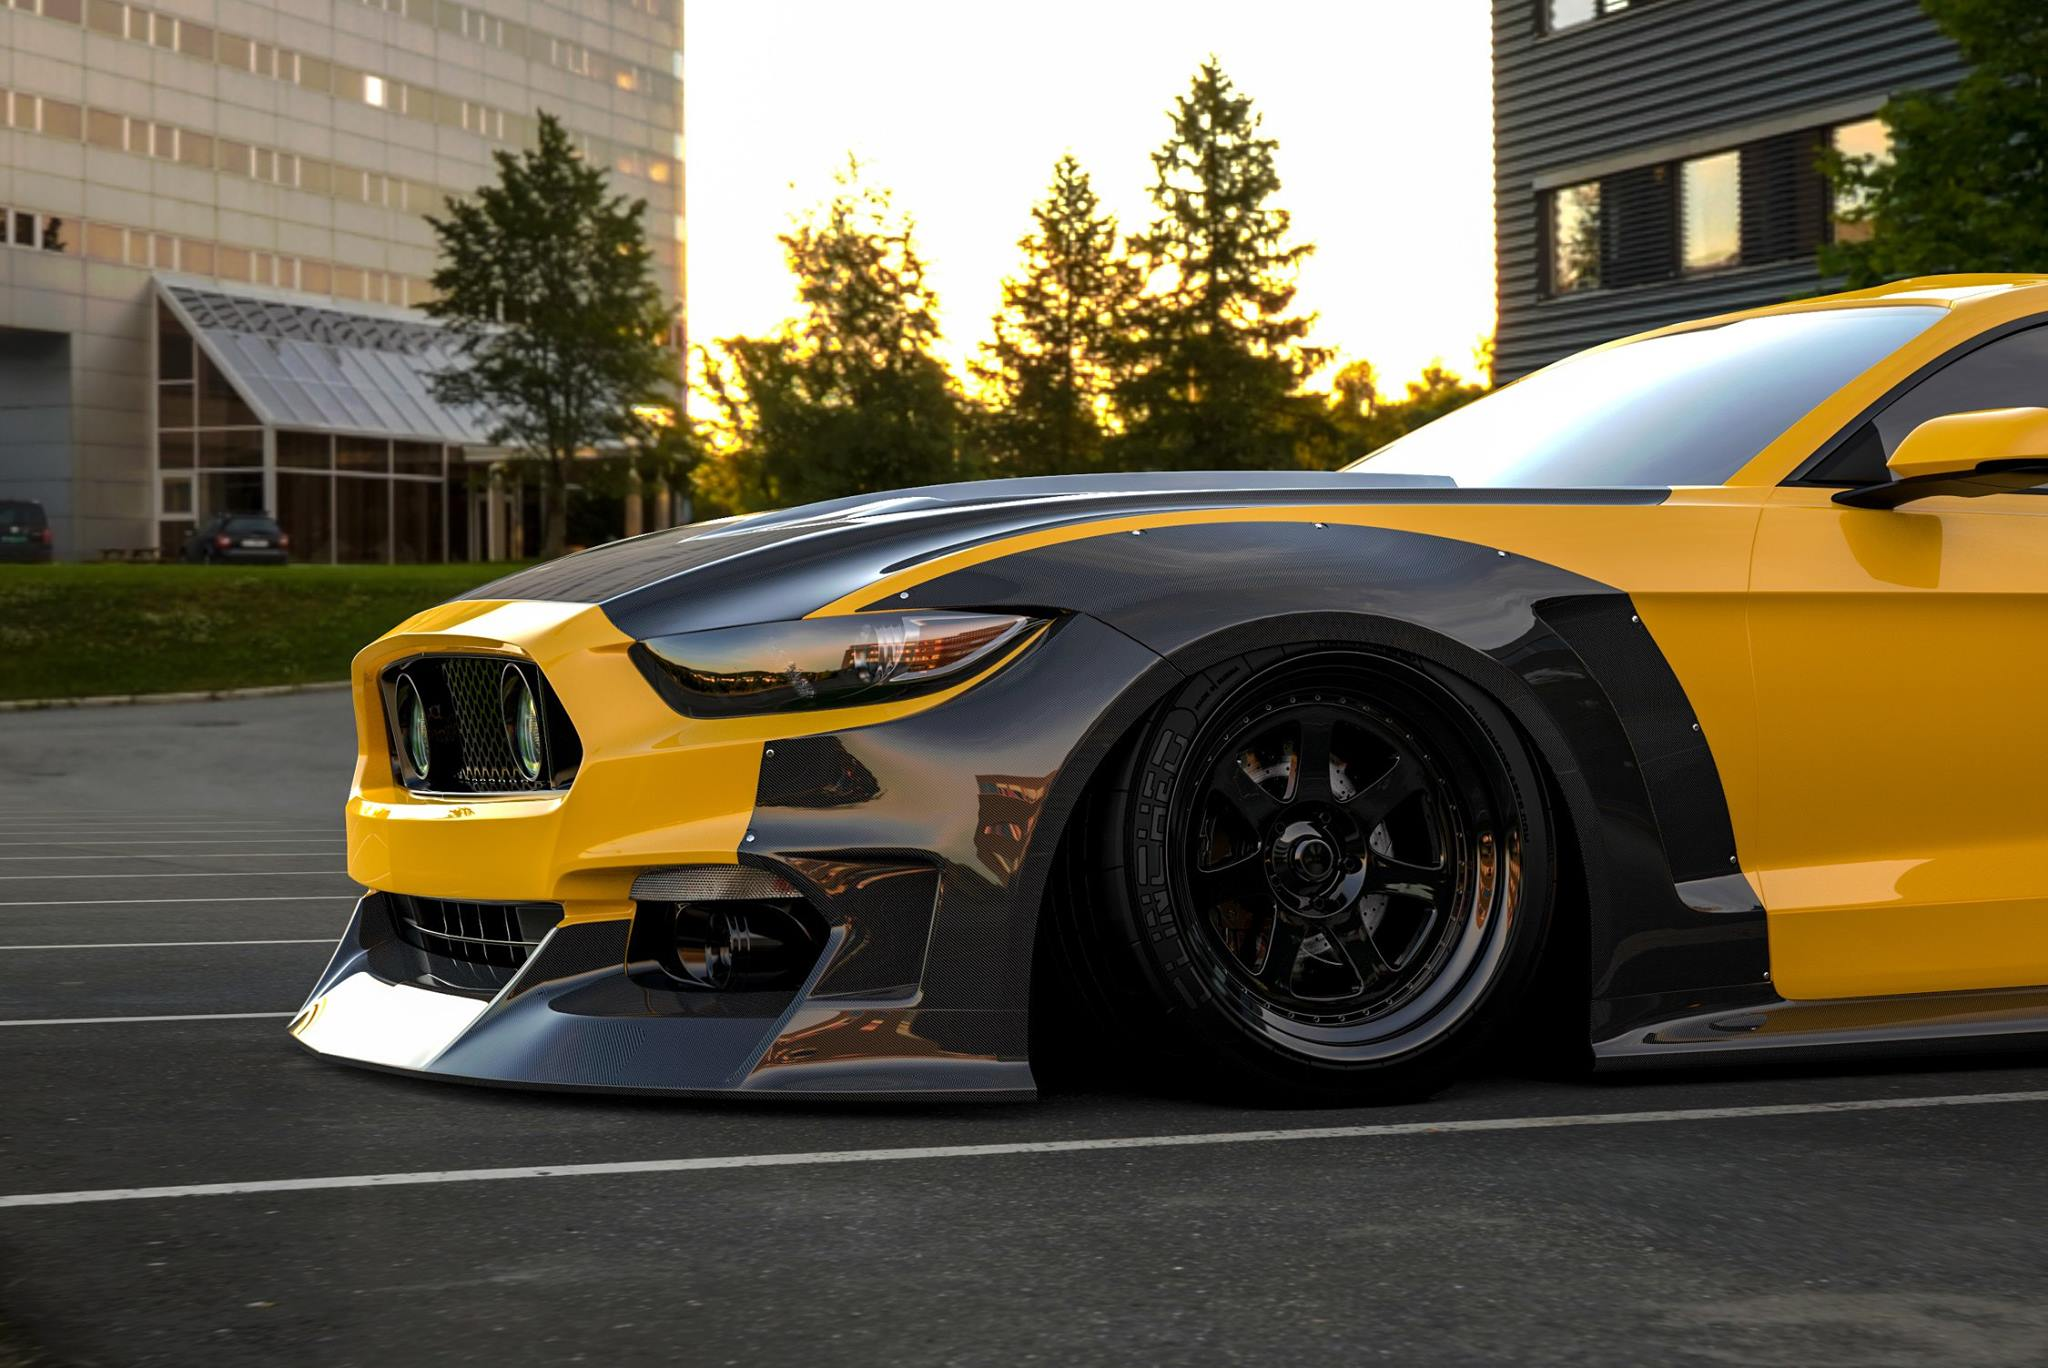 Ford Mustang widebody by Clinched (5)